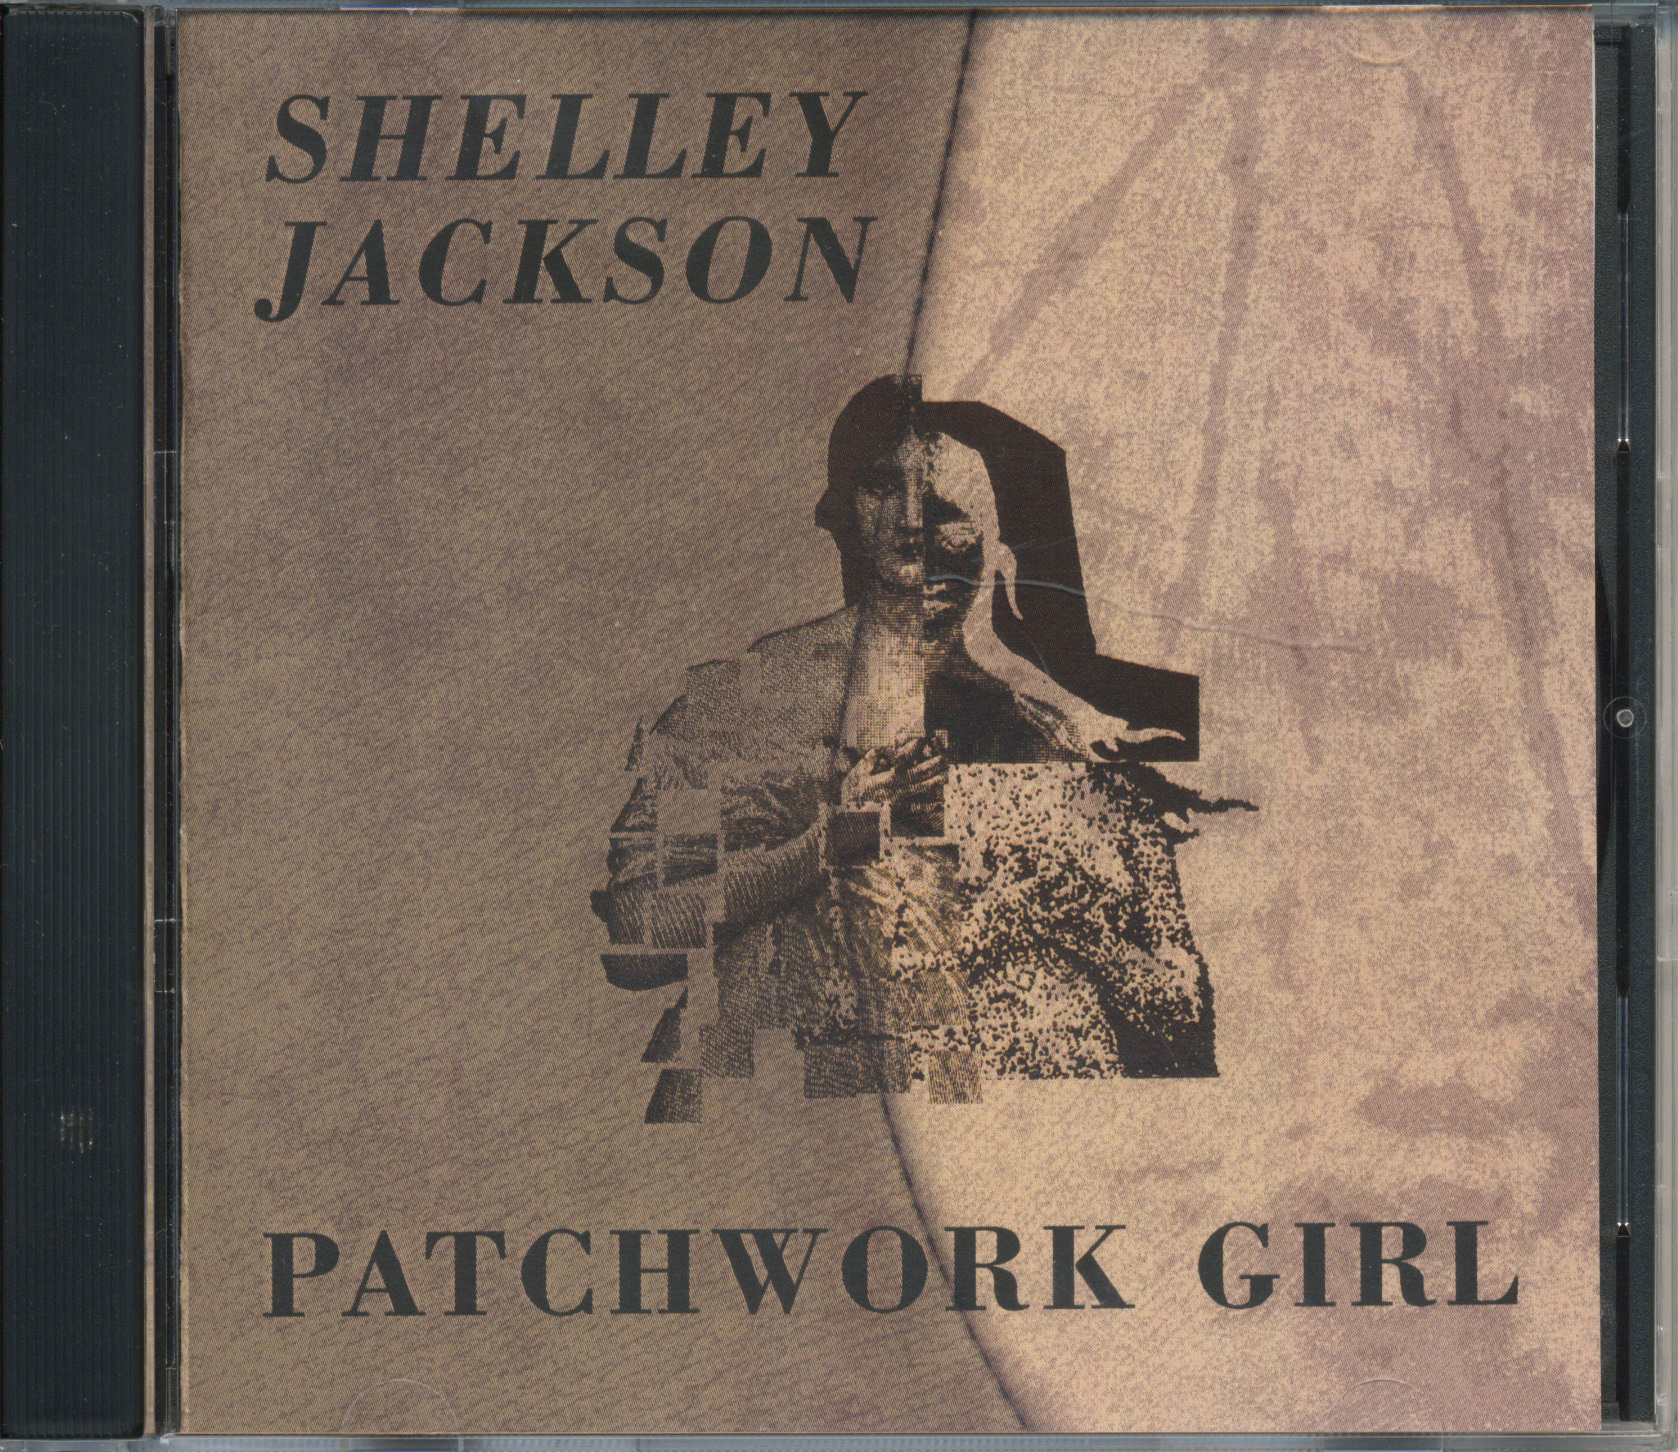 shelley jacksons patchwork girl essay Shelley jackson's patchwork gal patchwork girl, a hypertext vision sewn jointly by shelley jackson, is a tale and a merchant account of the creation of a monster and the partnership the mind.